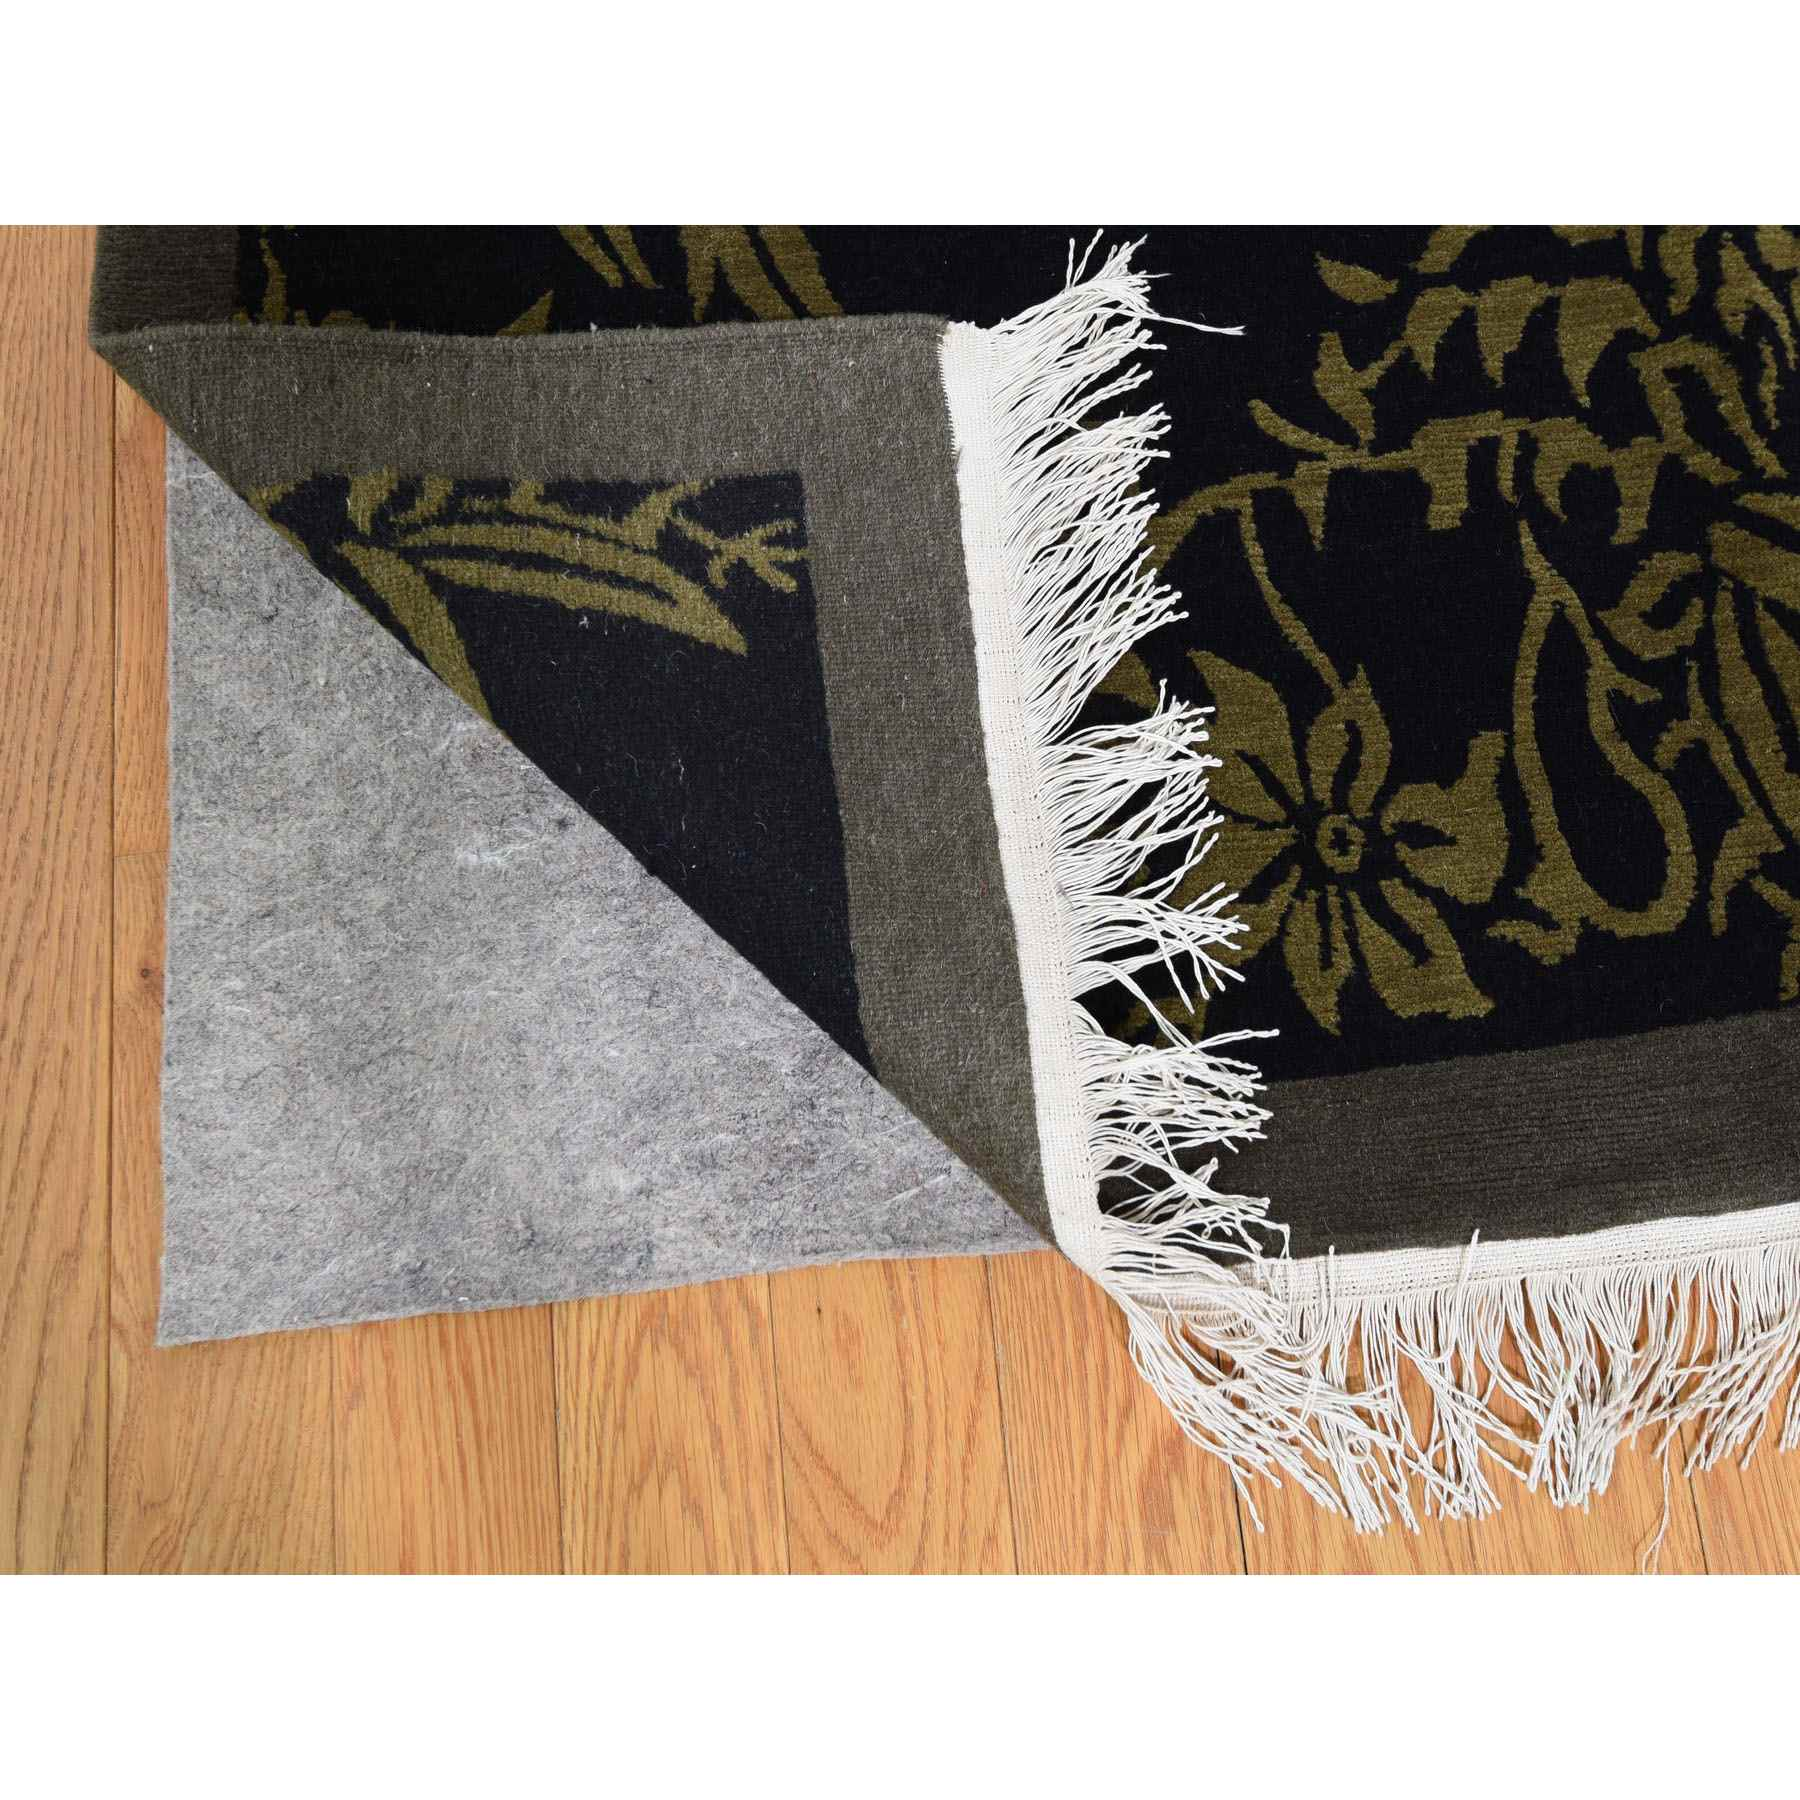 Modern-and-Contemporary-Hand-Knotted-Rug-243900